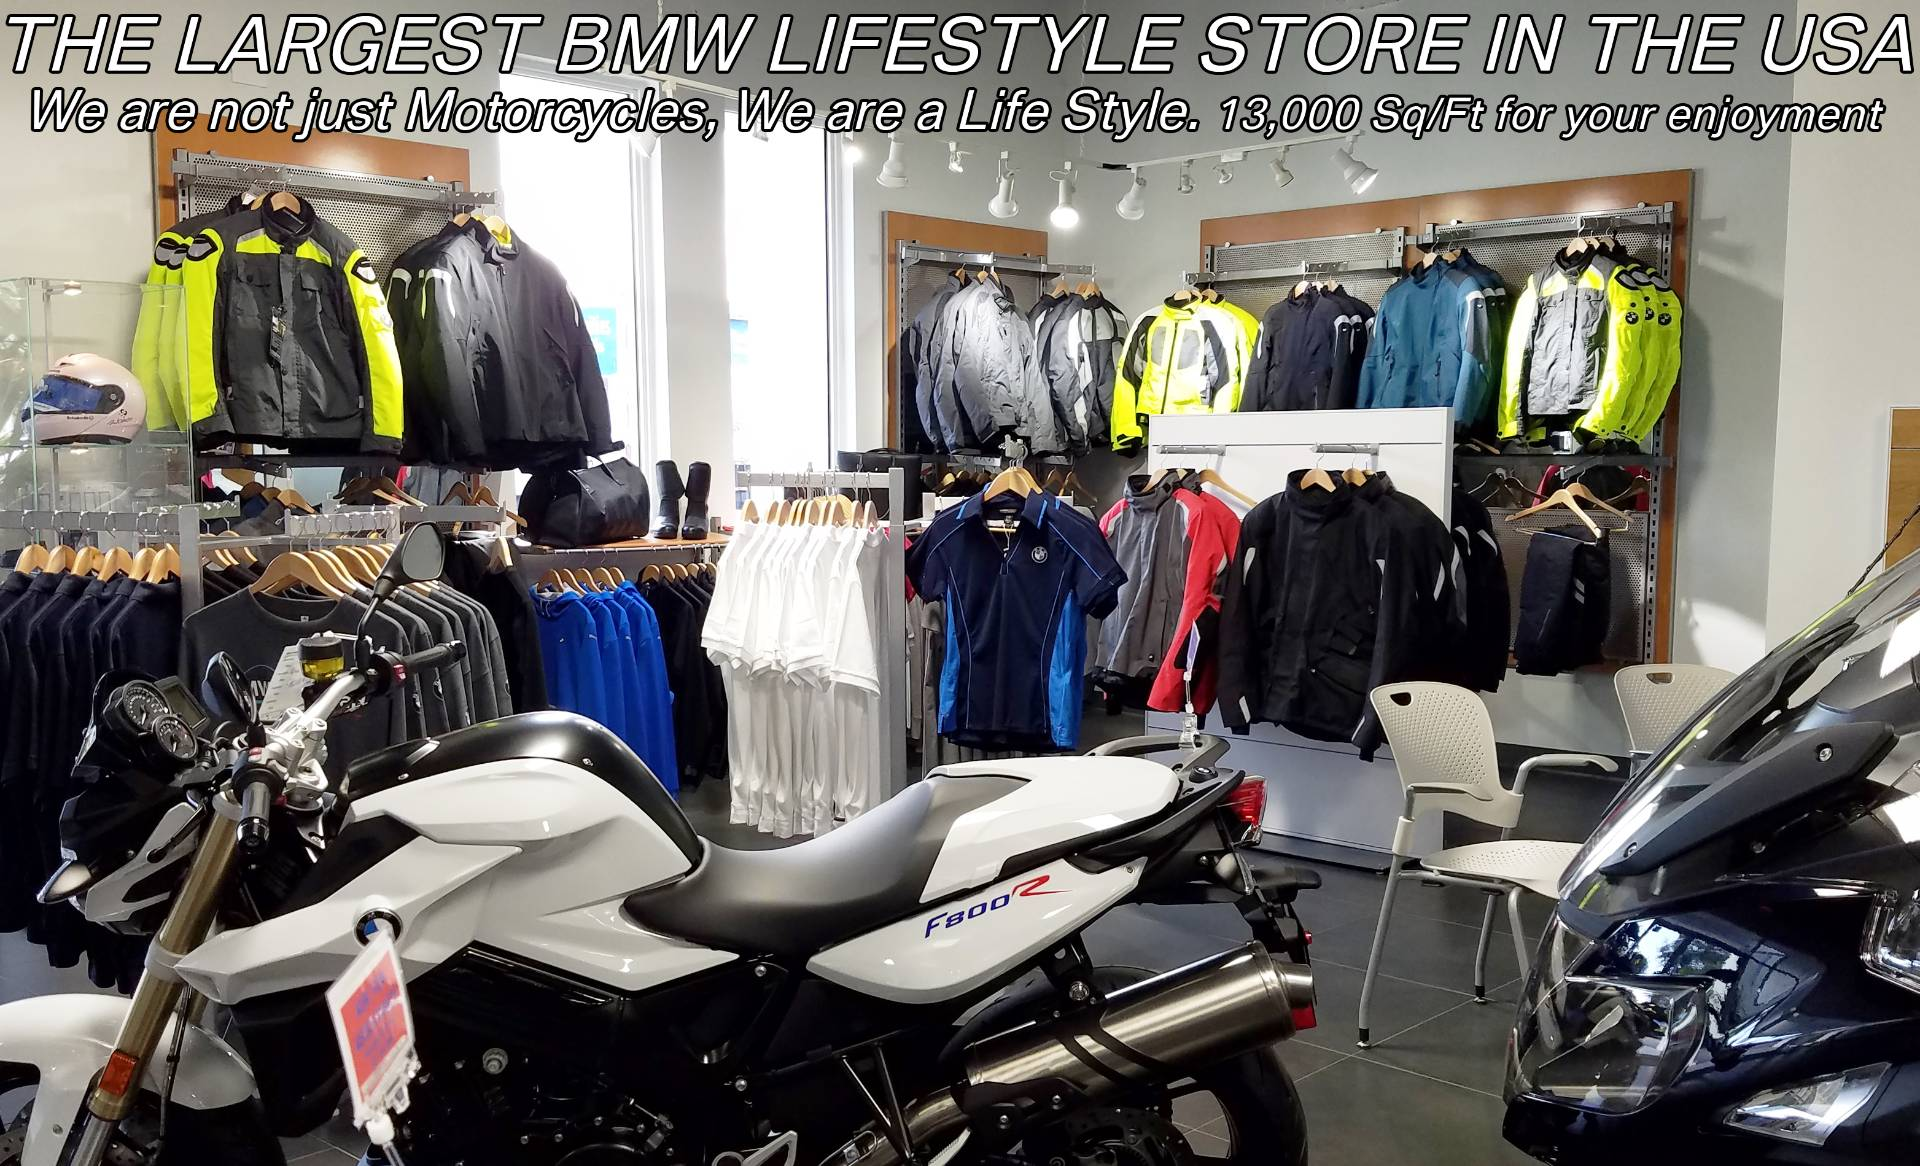 New 2019 BMW R 1250 GSA for sale, BMW for sale R 1250GSA, BMW Motorcycle R1250GSA, new BMW 1250GS Adventure, R1250GSAdventure, BMW Adventure, BMW Motorcycles of Miami, Motorcycles of Miami - Photo 42